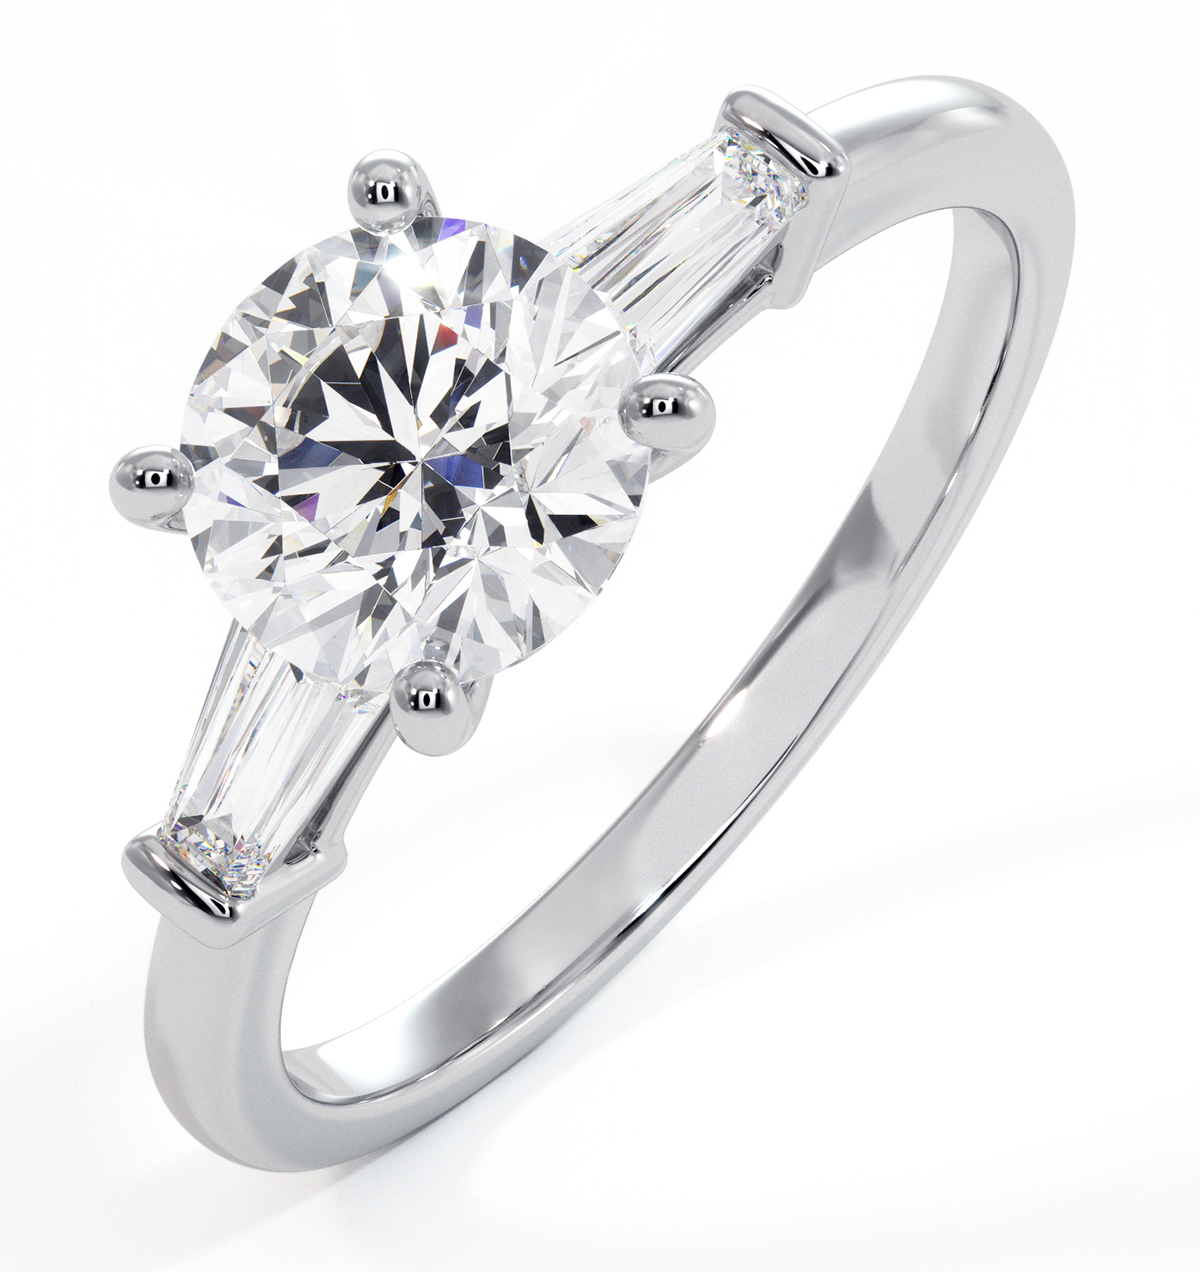 Isadora GIA Diamond Engagement Ring Platinum 1.25ct G/VS1 - image 1